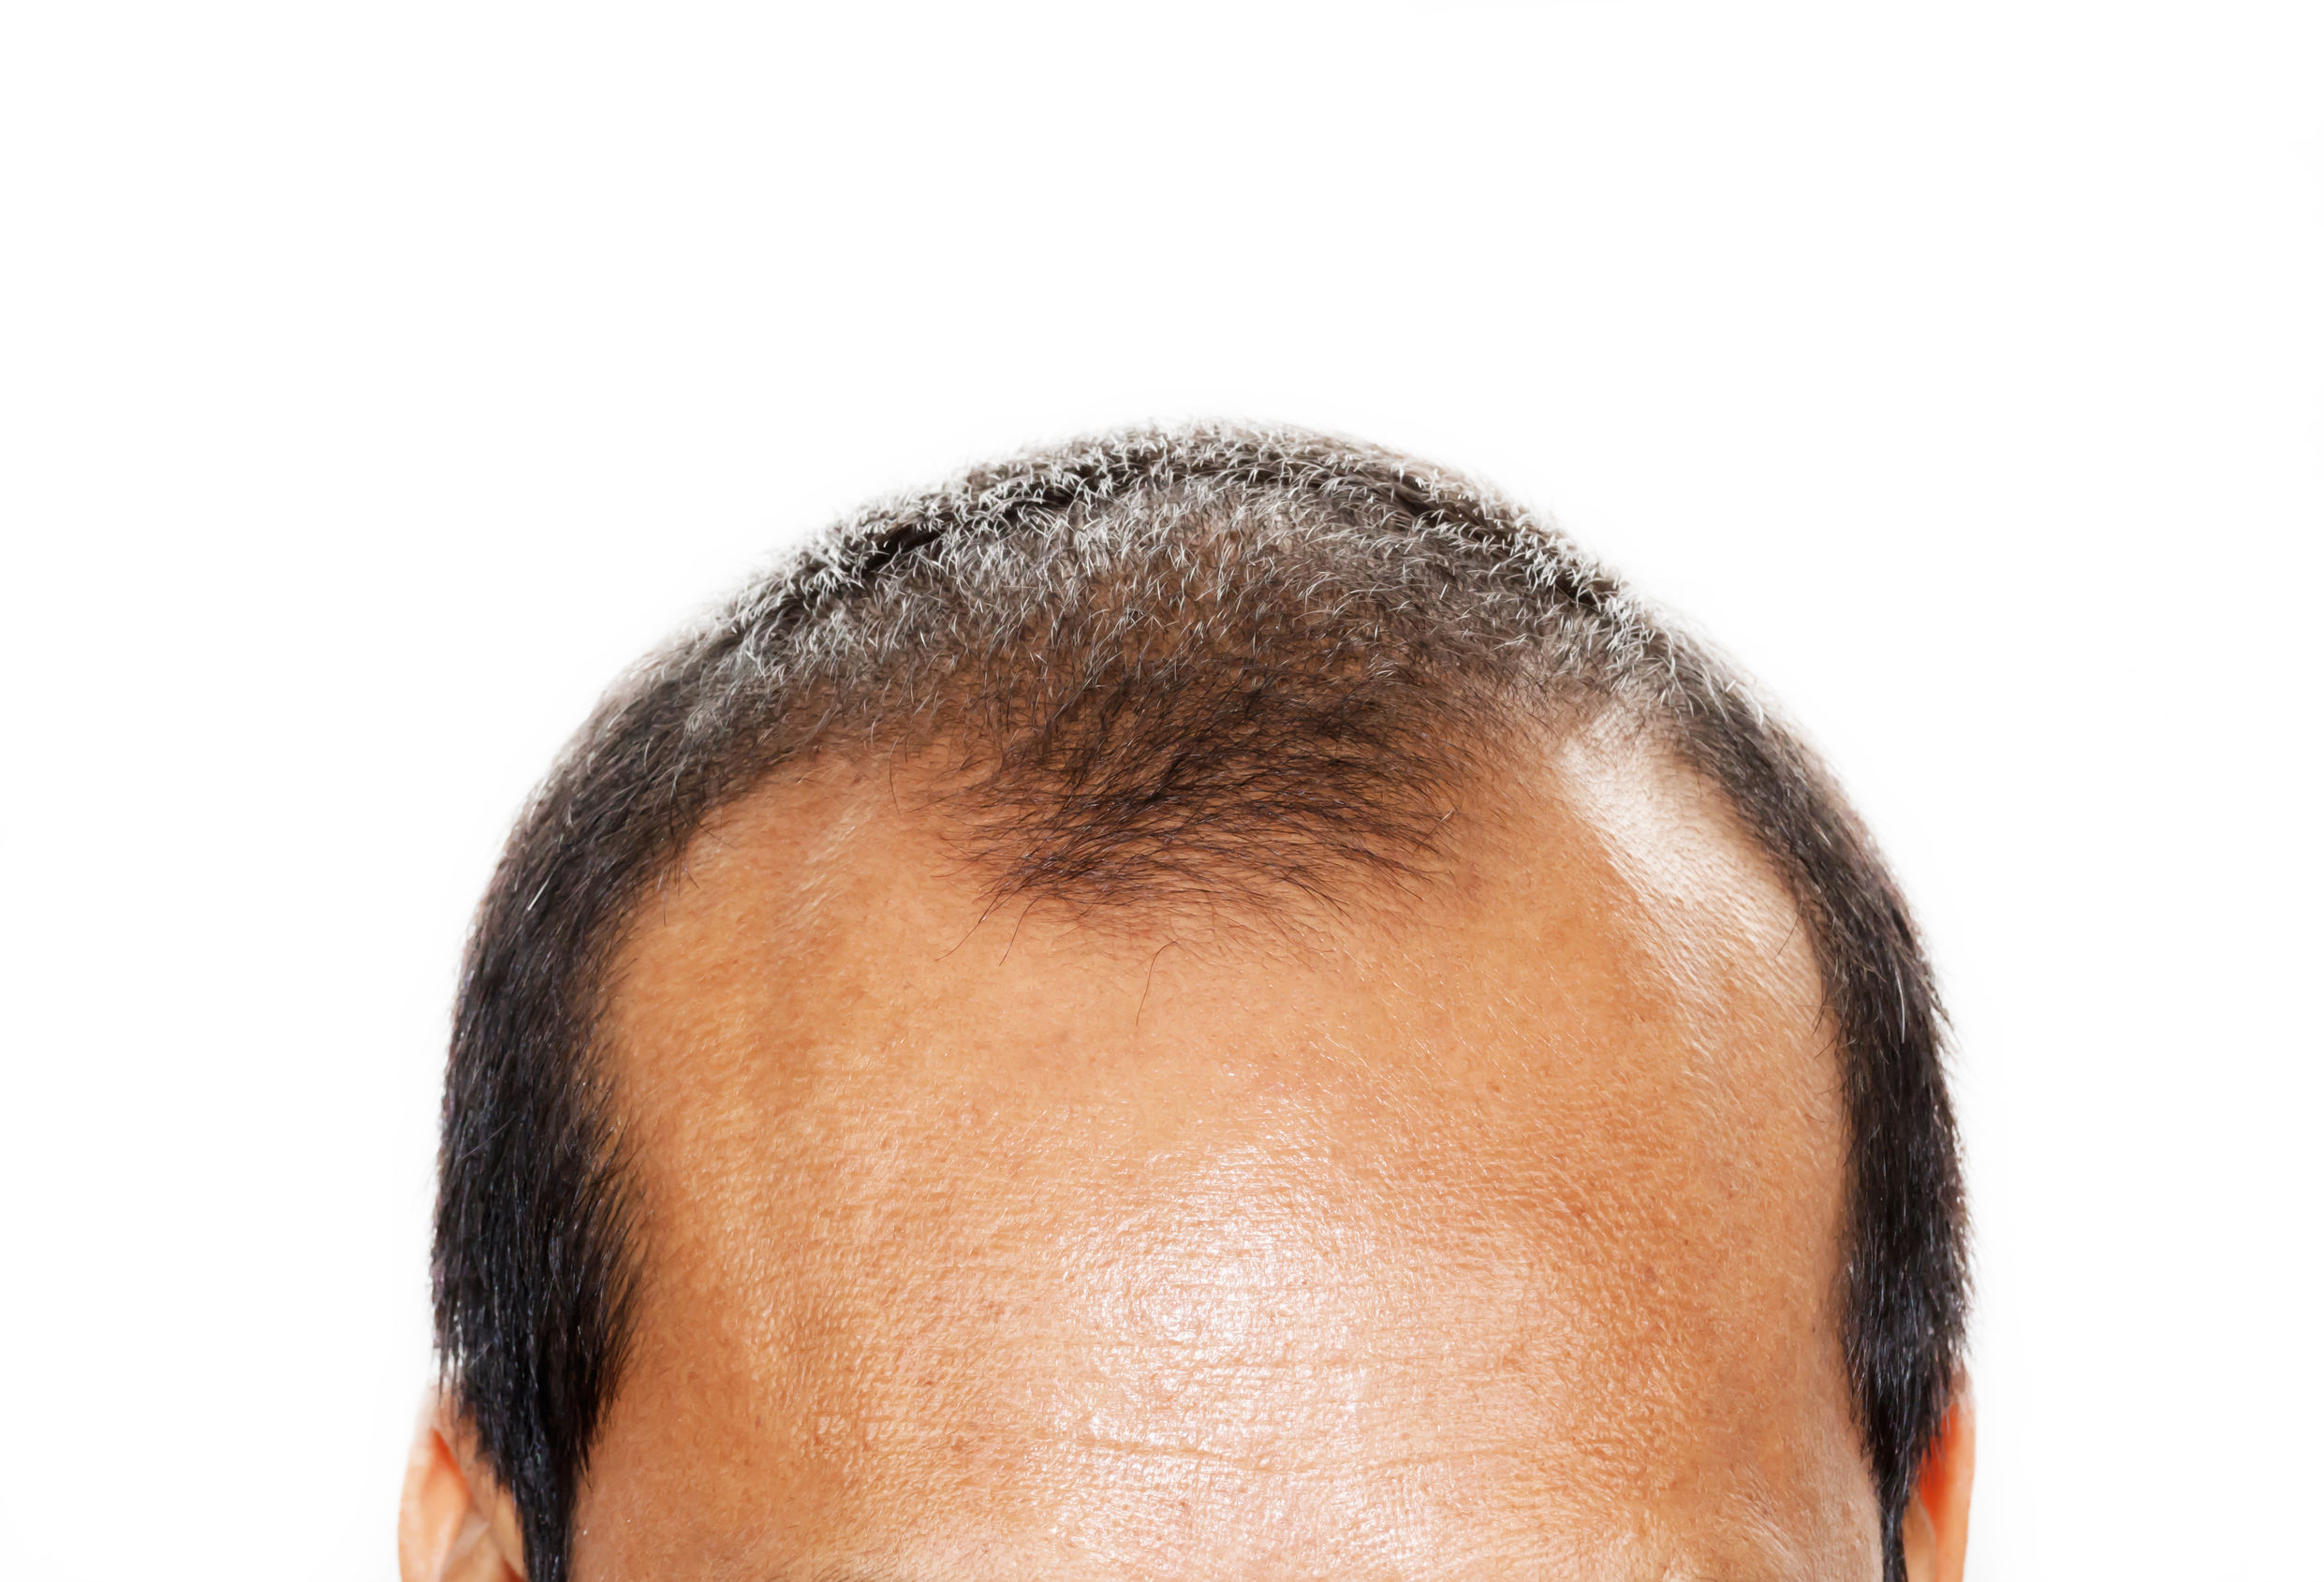 Mature Hairline Vs Balding The Quick Facts